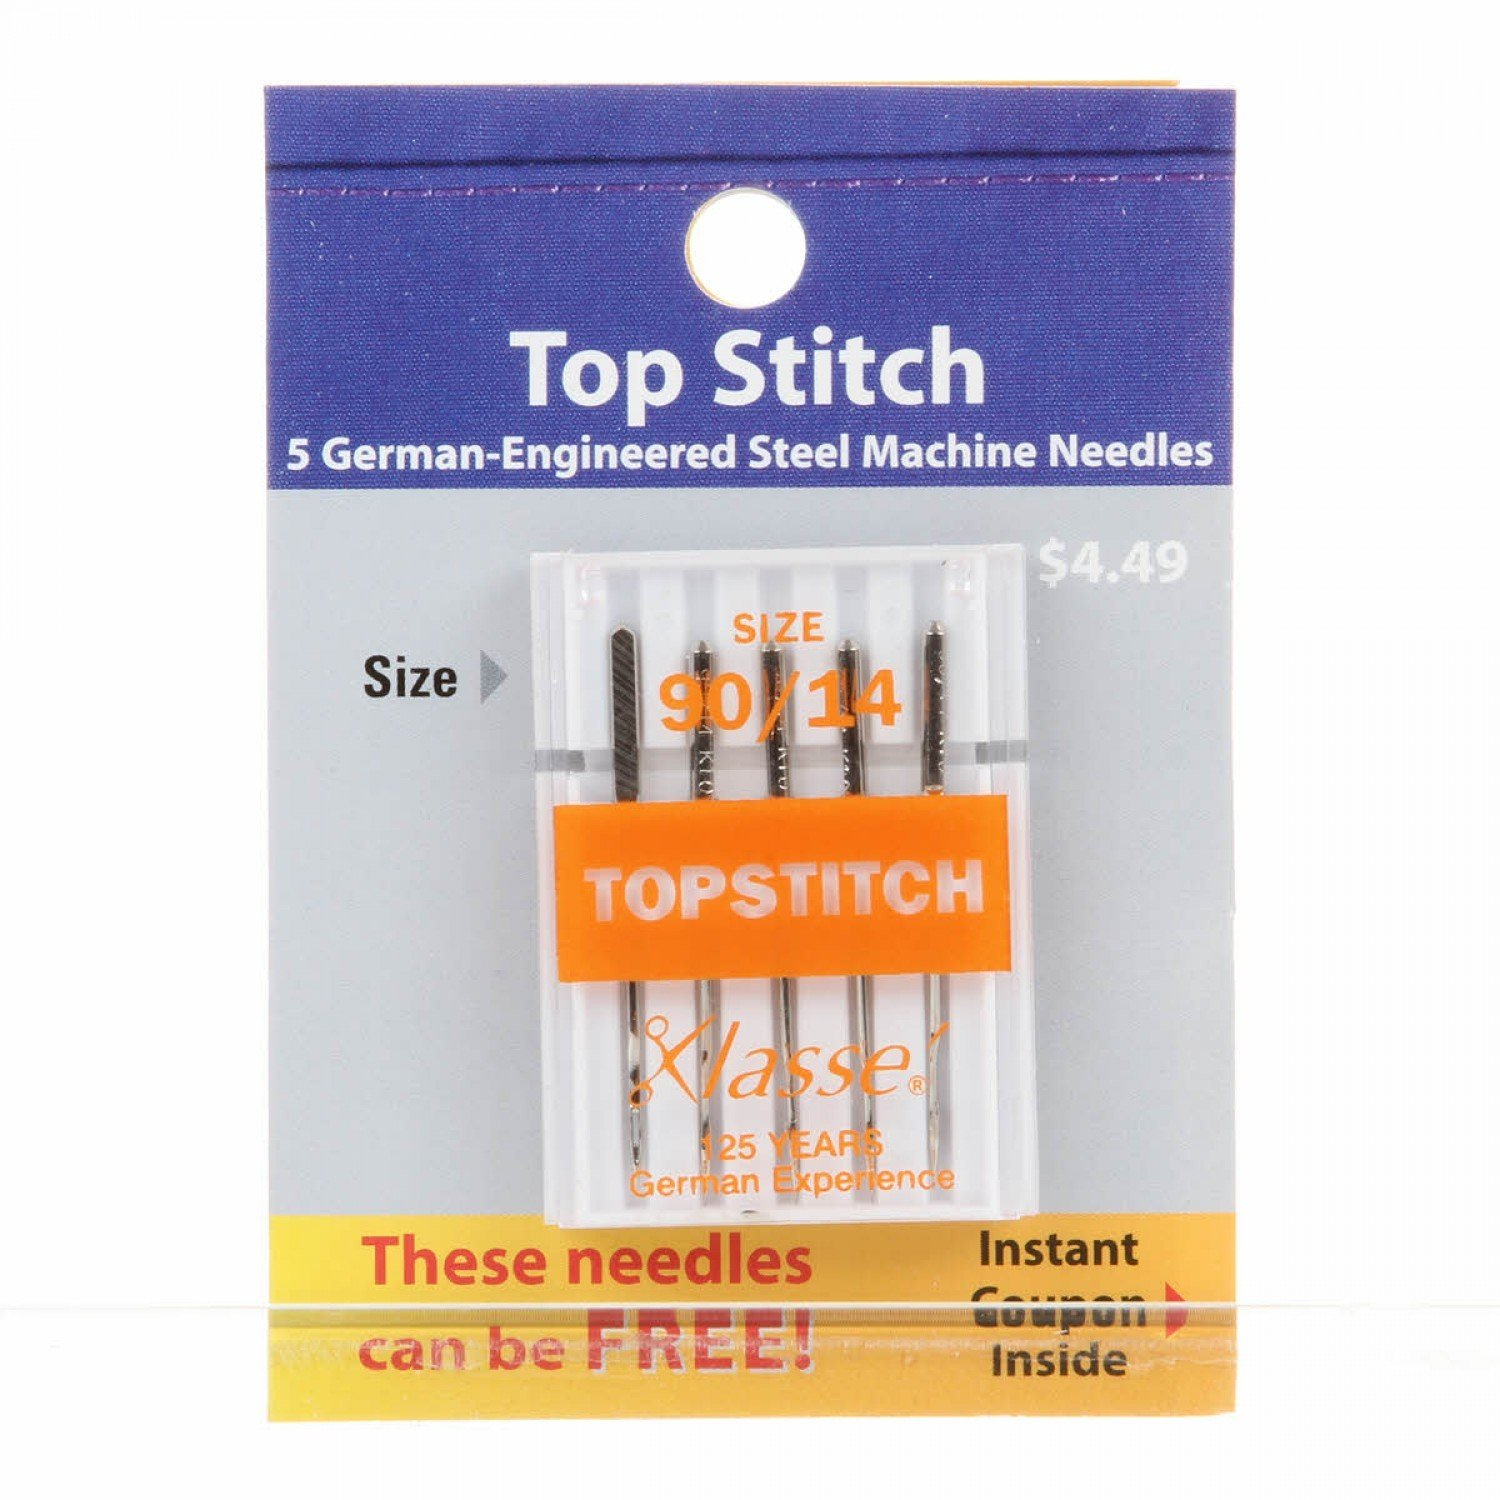 Klasse Top Stitch Needles SZ90/14